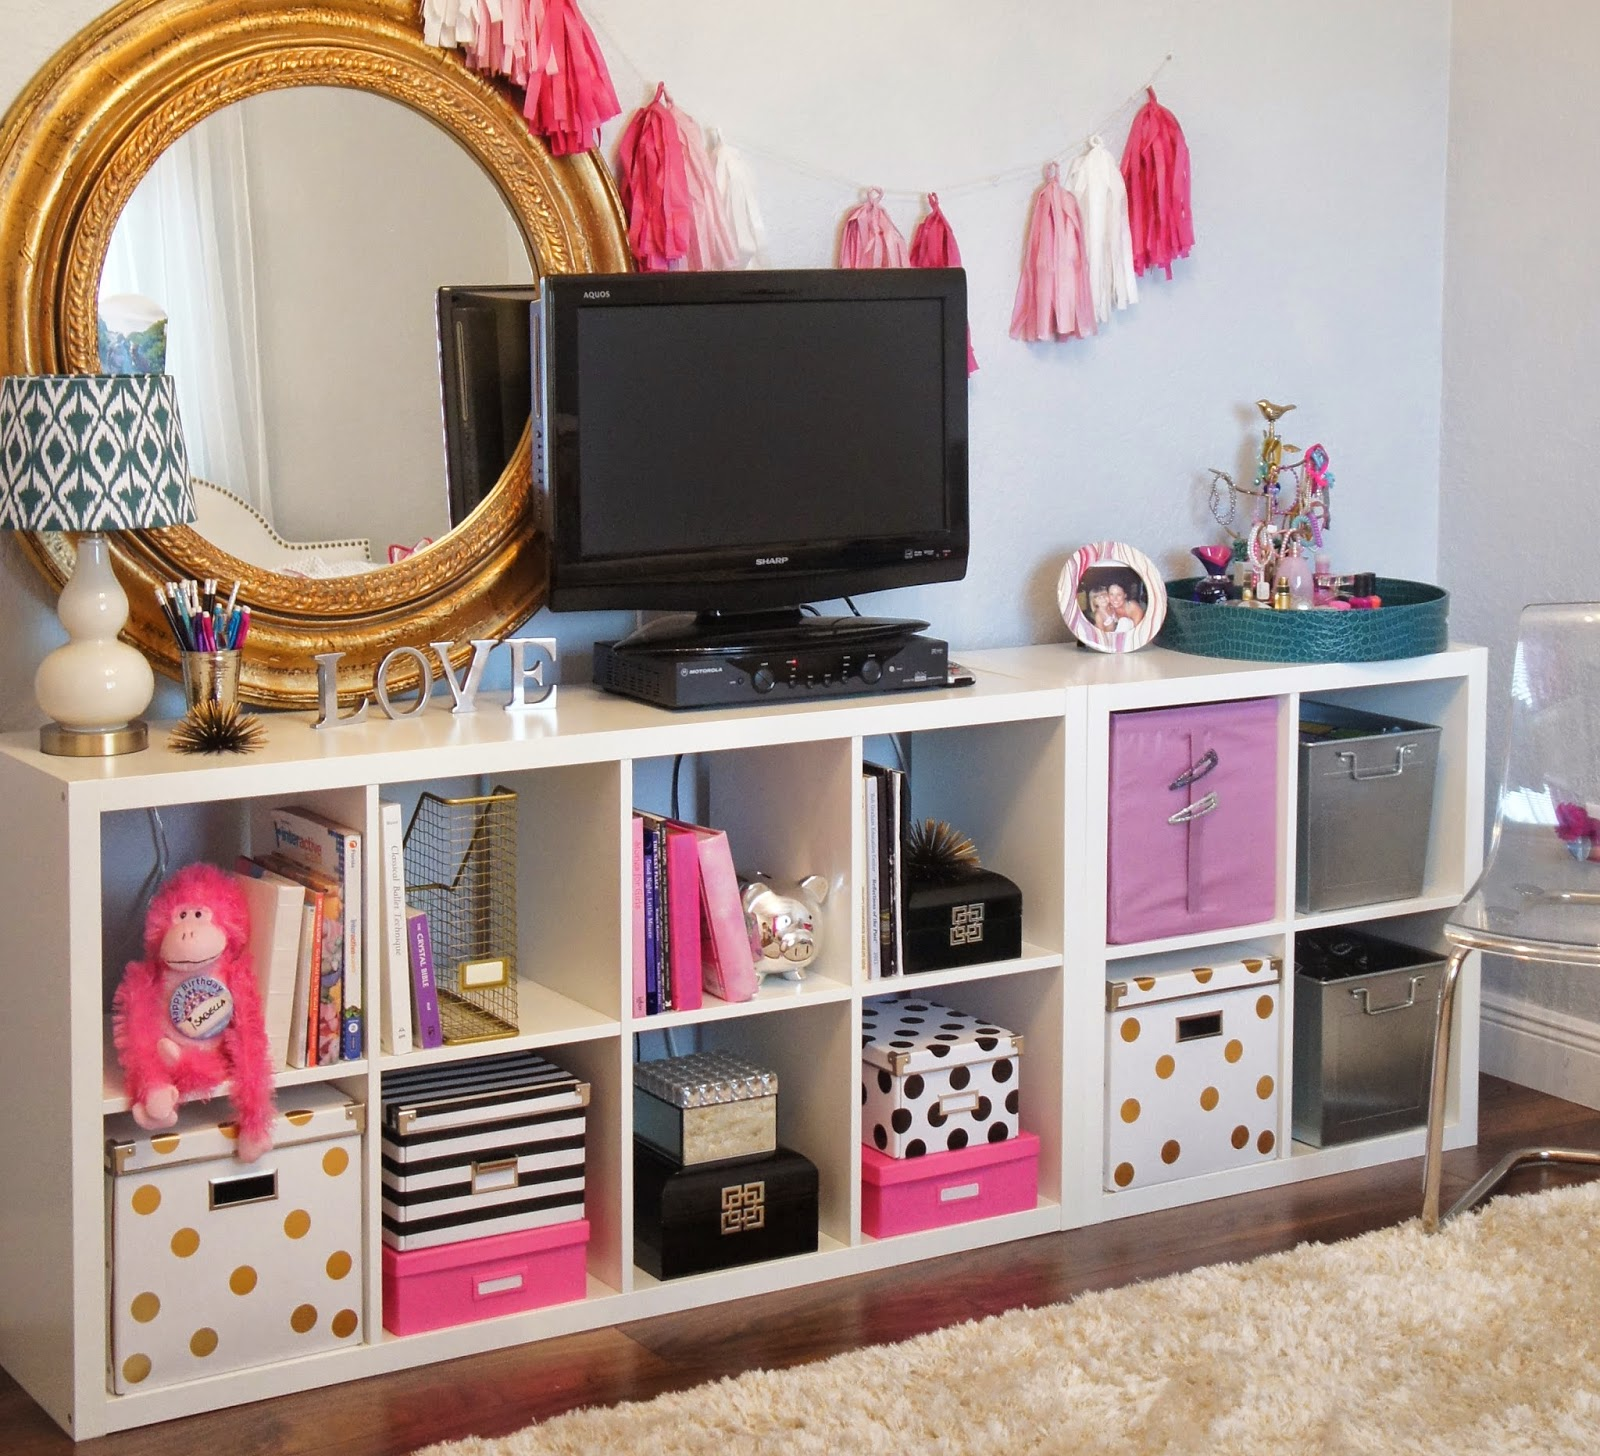 the cuban in my coffee diy kate spade inspired ikea storage boxes. Black Bedroom Furniture Sets. Home Design Ideas